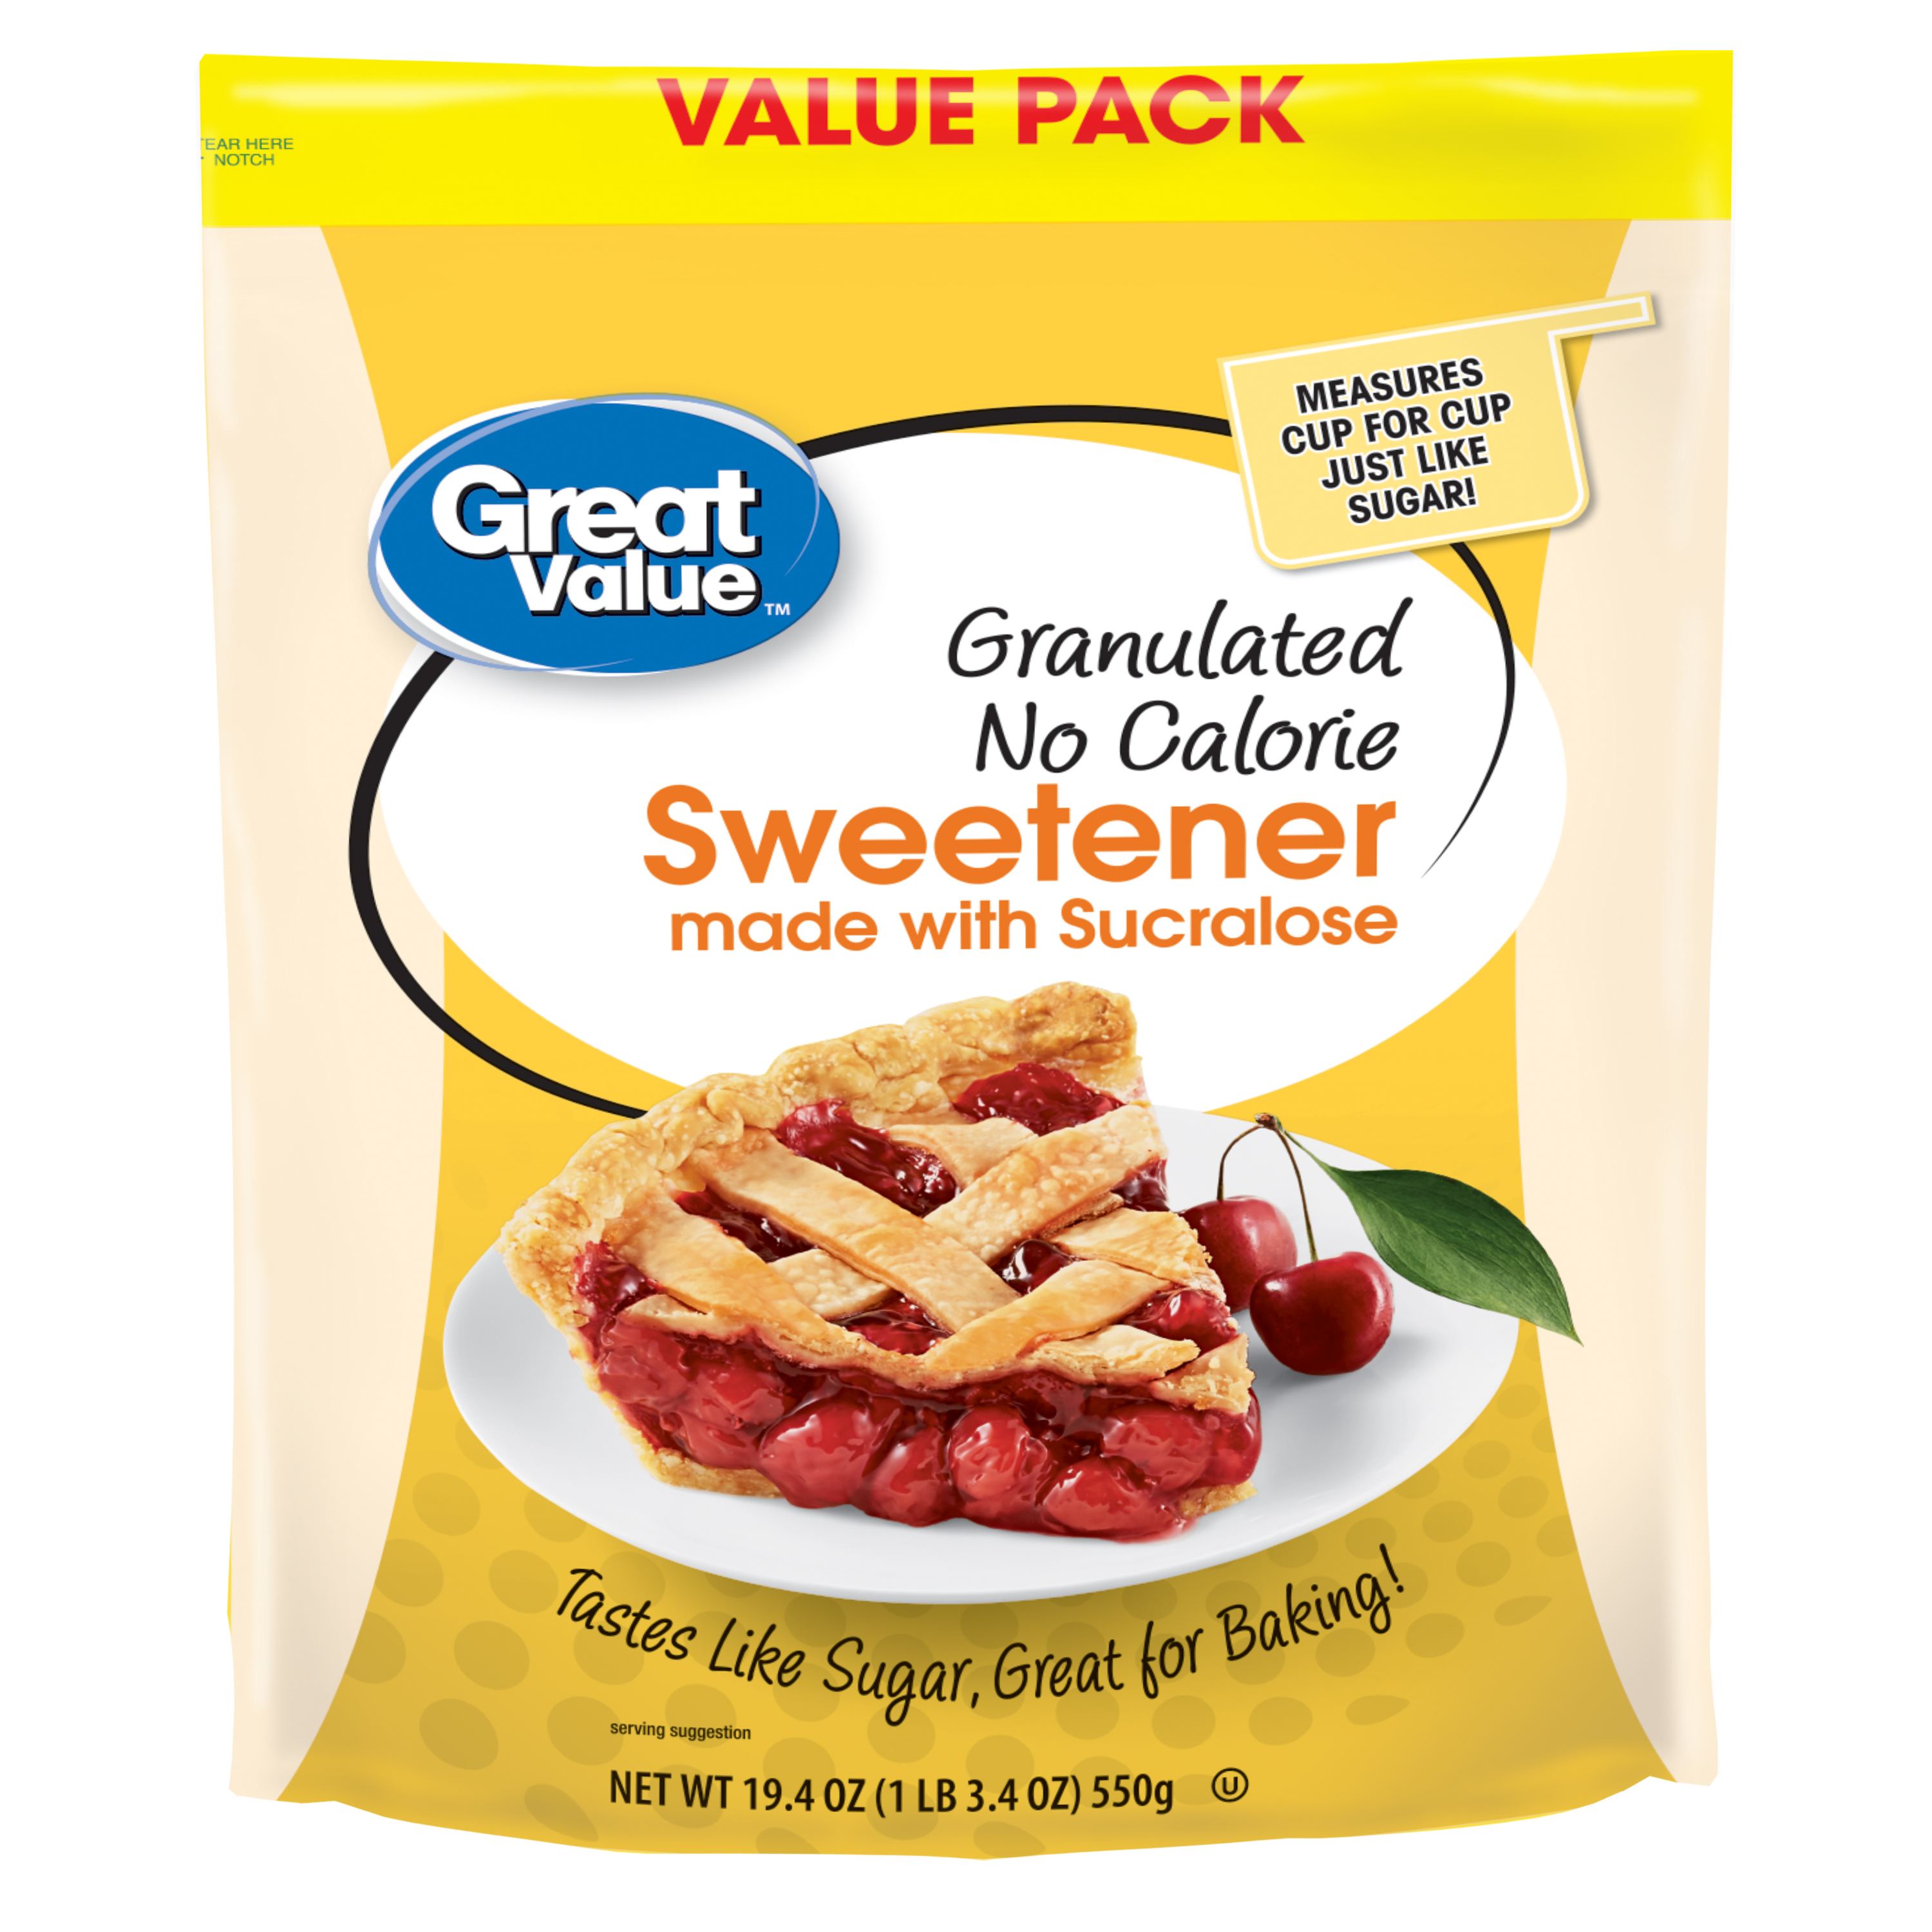 Great Value Sweetener with Sucralose, 19.4 Oz